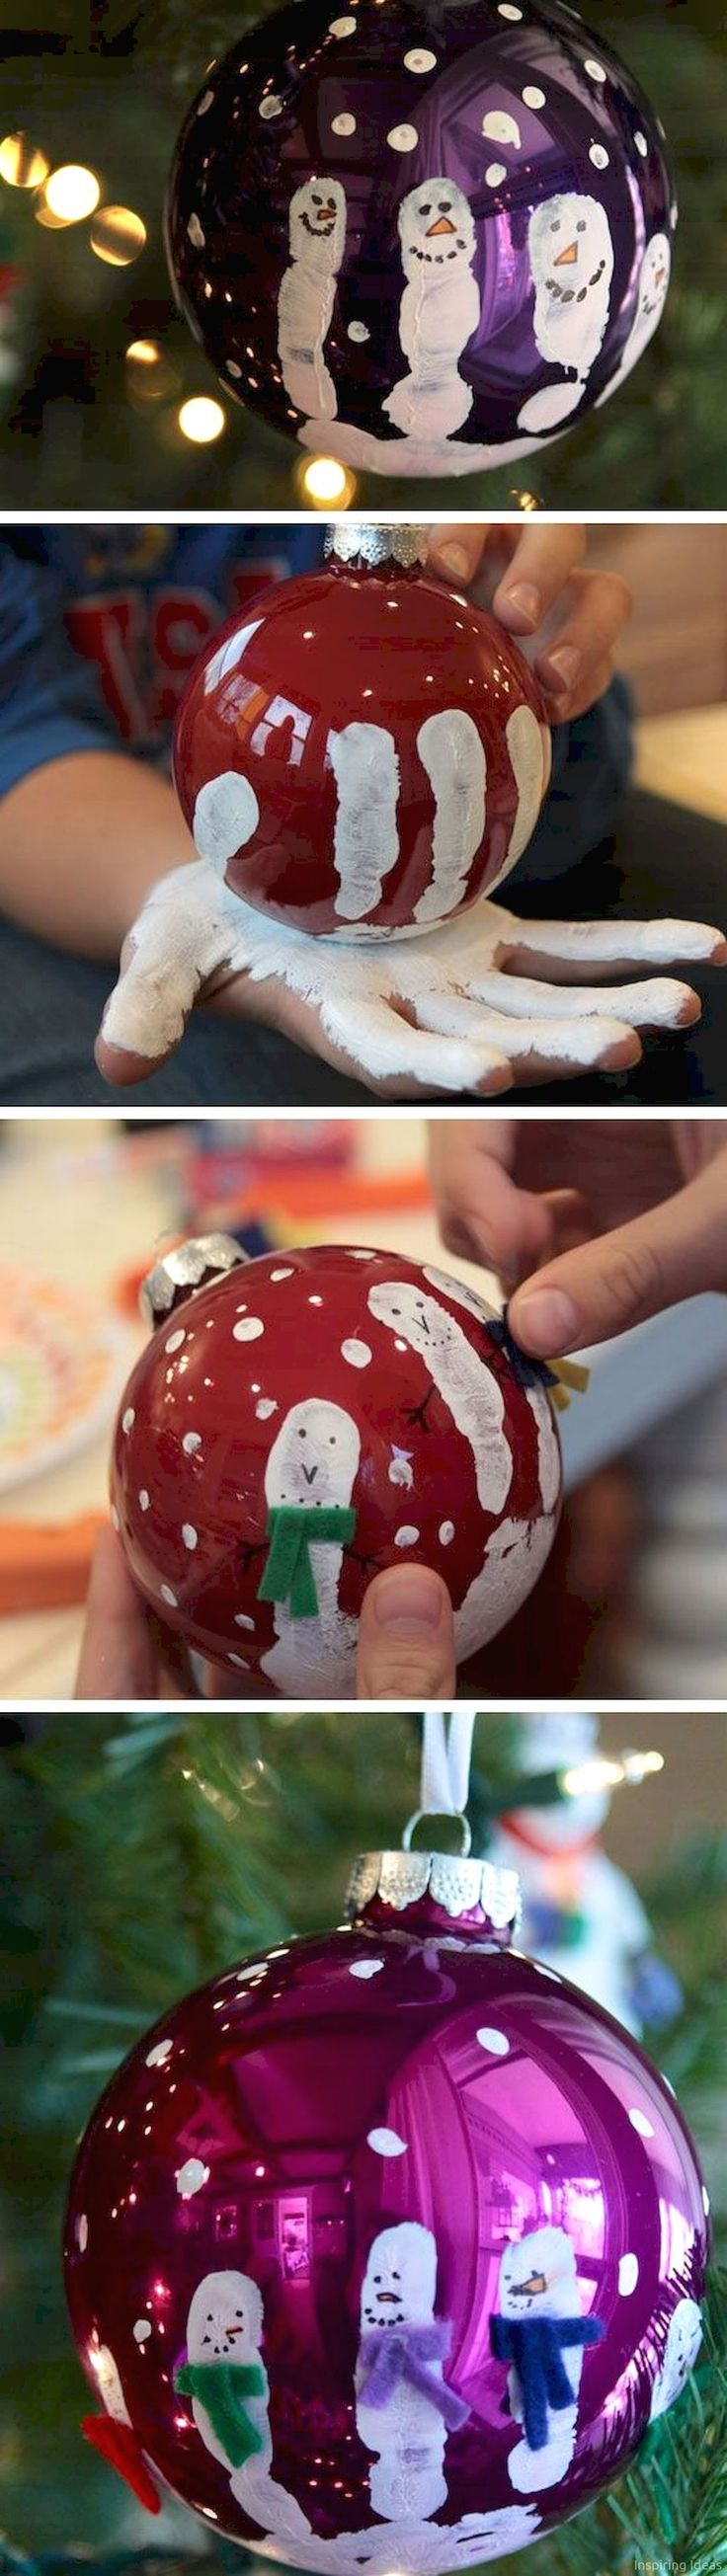 18 best daycare christmas images on Pinterest